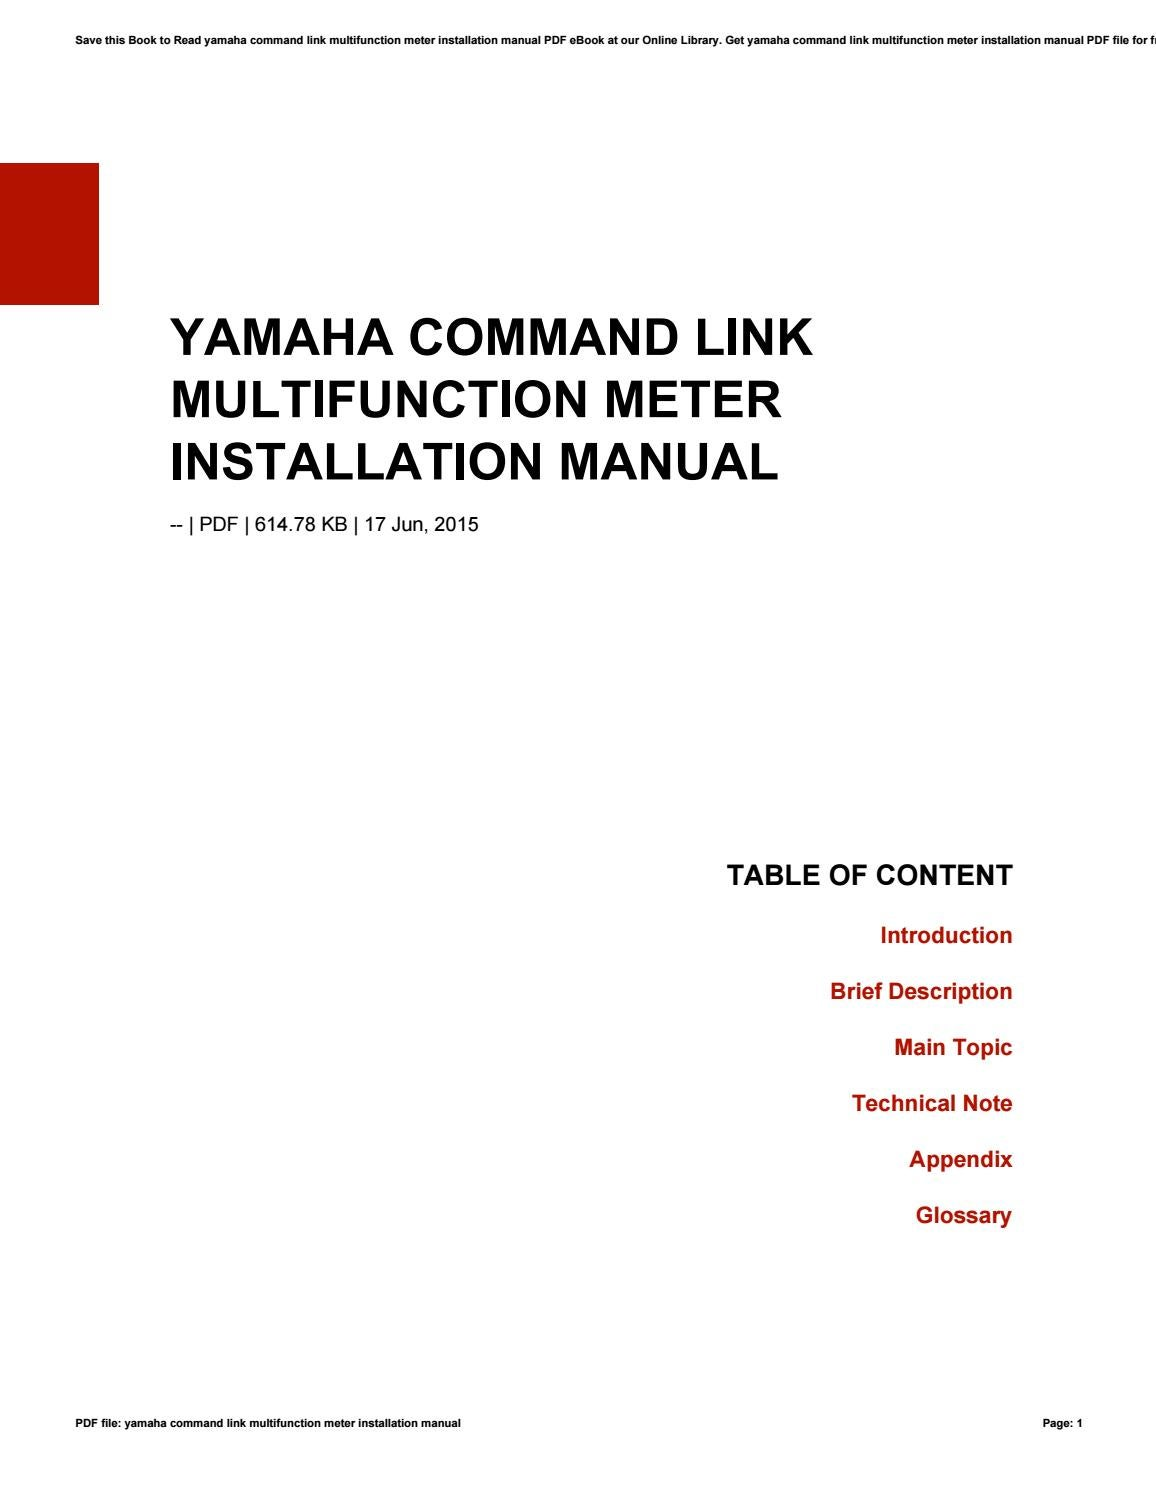 Yamaha command link multifunction meter installation manual by preseven00 -  issuu